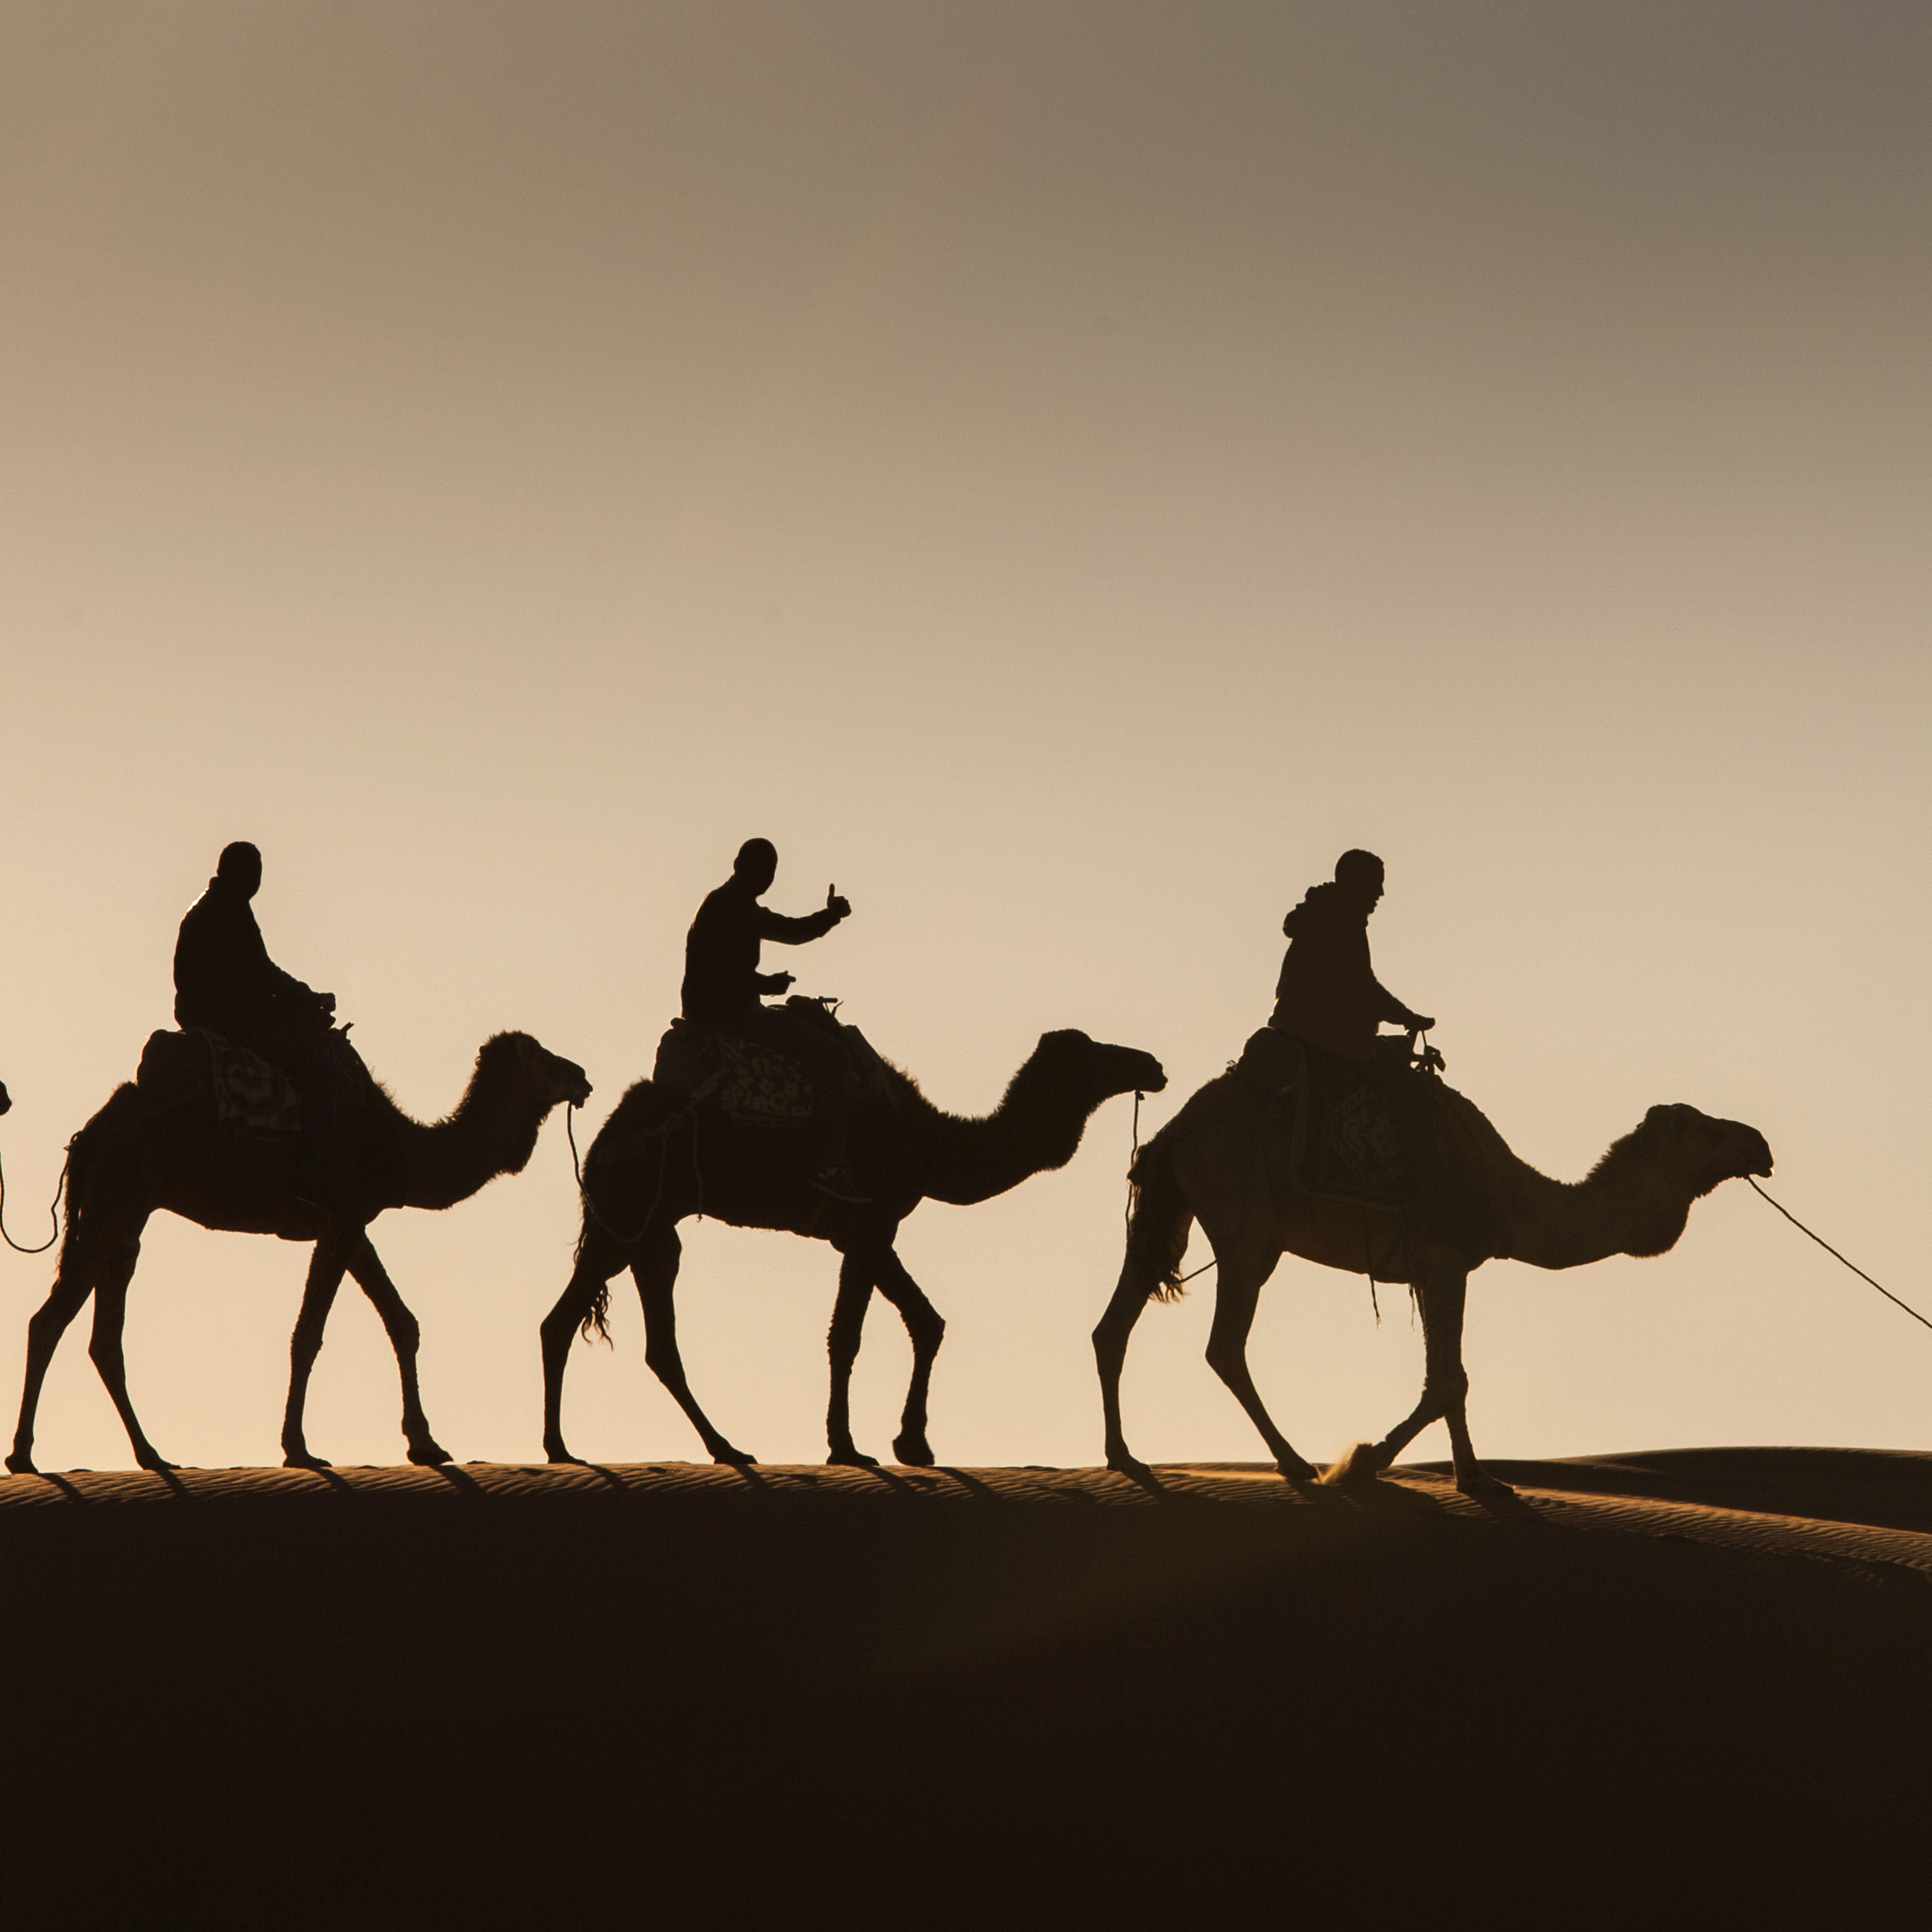 Four camels and riders